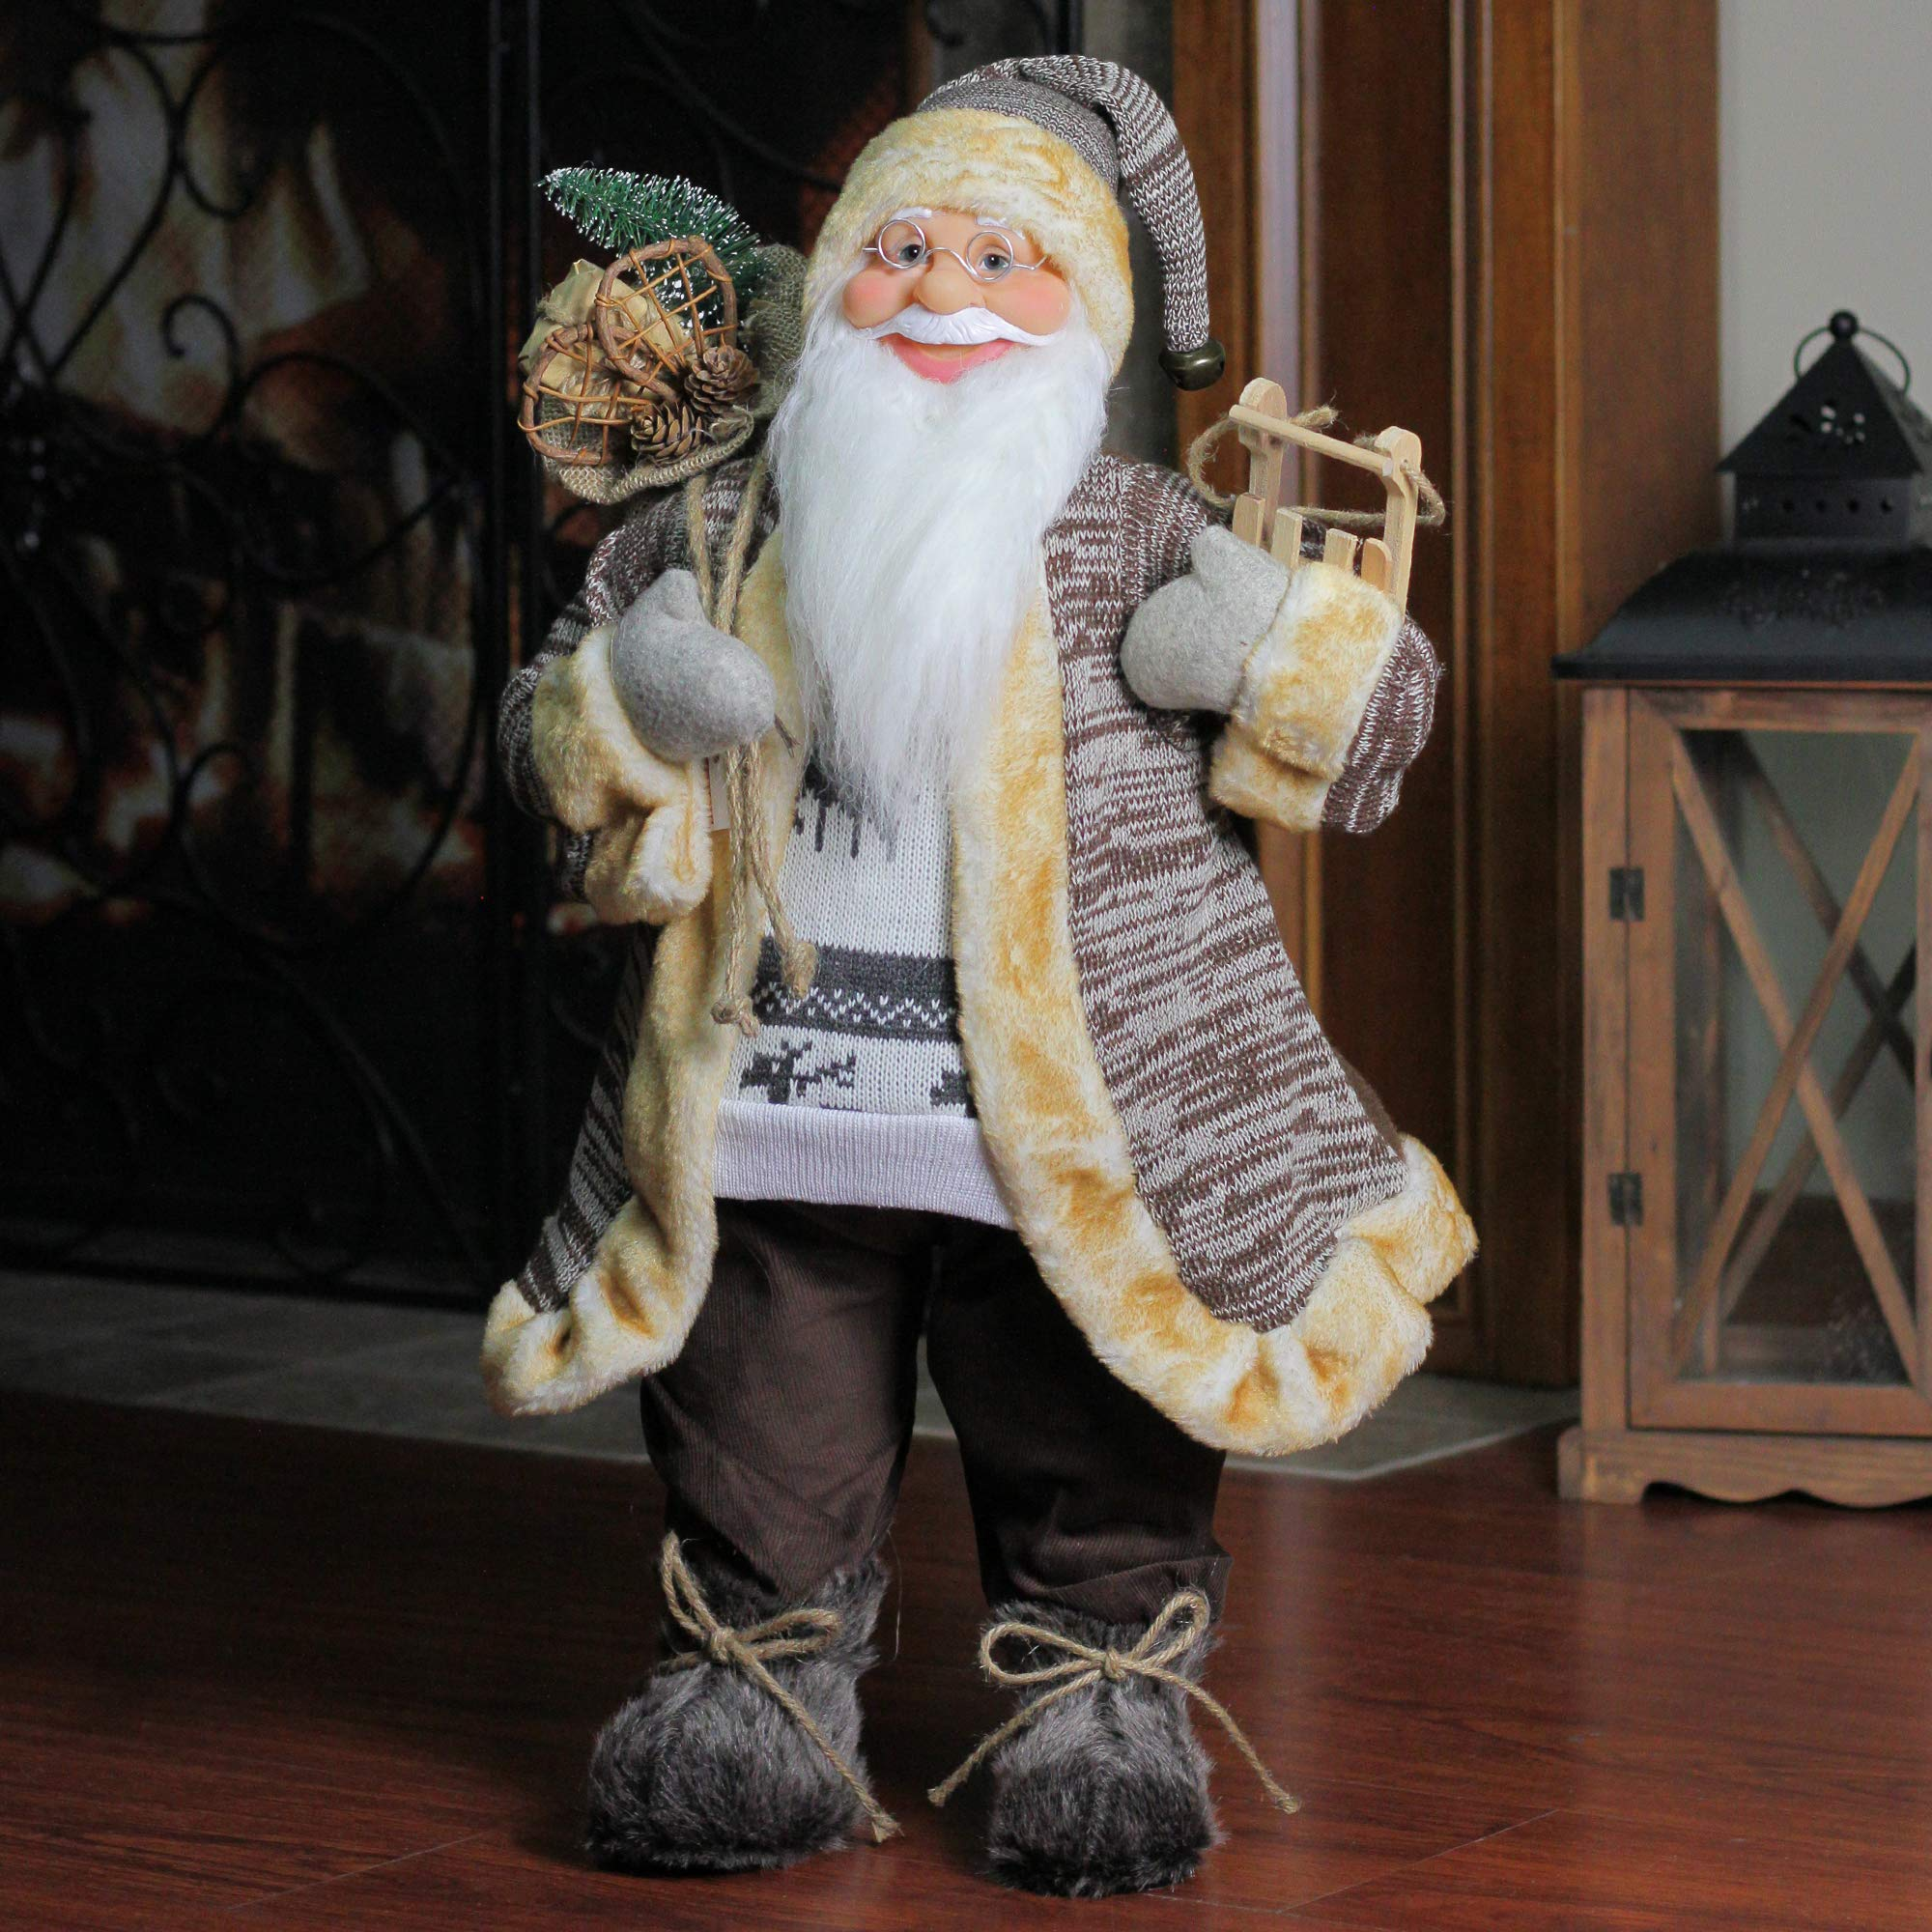 Northlight 24'' Natural Country Brown Standing Santa Claus Christmas Figure with Sled and Gift Bag by Northlight (Image #1)